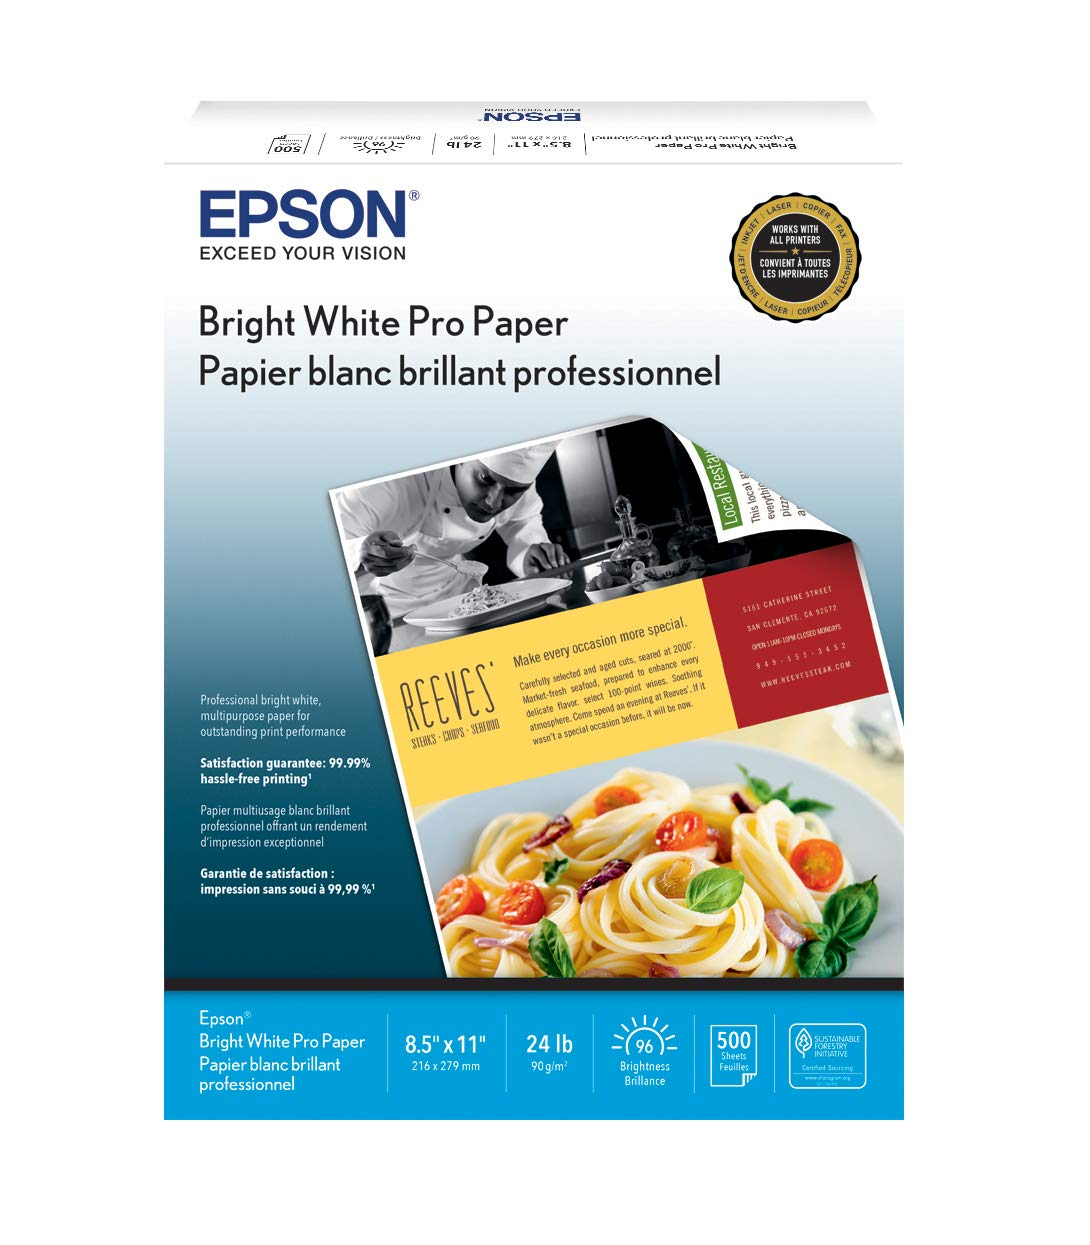 "B00005MJS0 Epson Bright White Pro Paper - S041586-4, 8.5"" x 11"" (500 sheets) 61cKqwhoXjL"